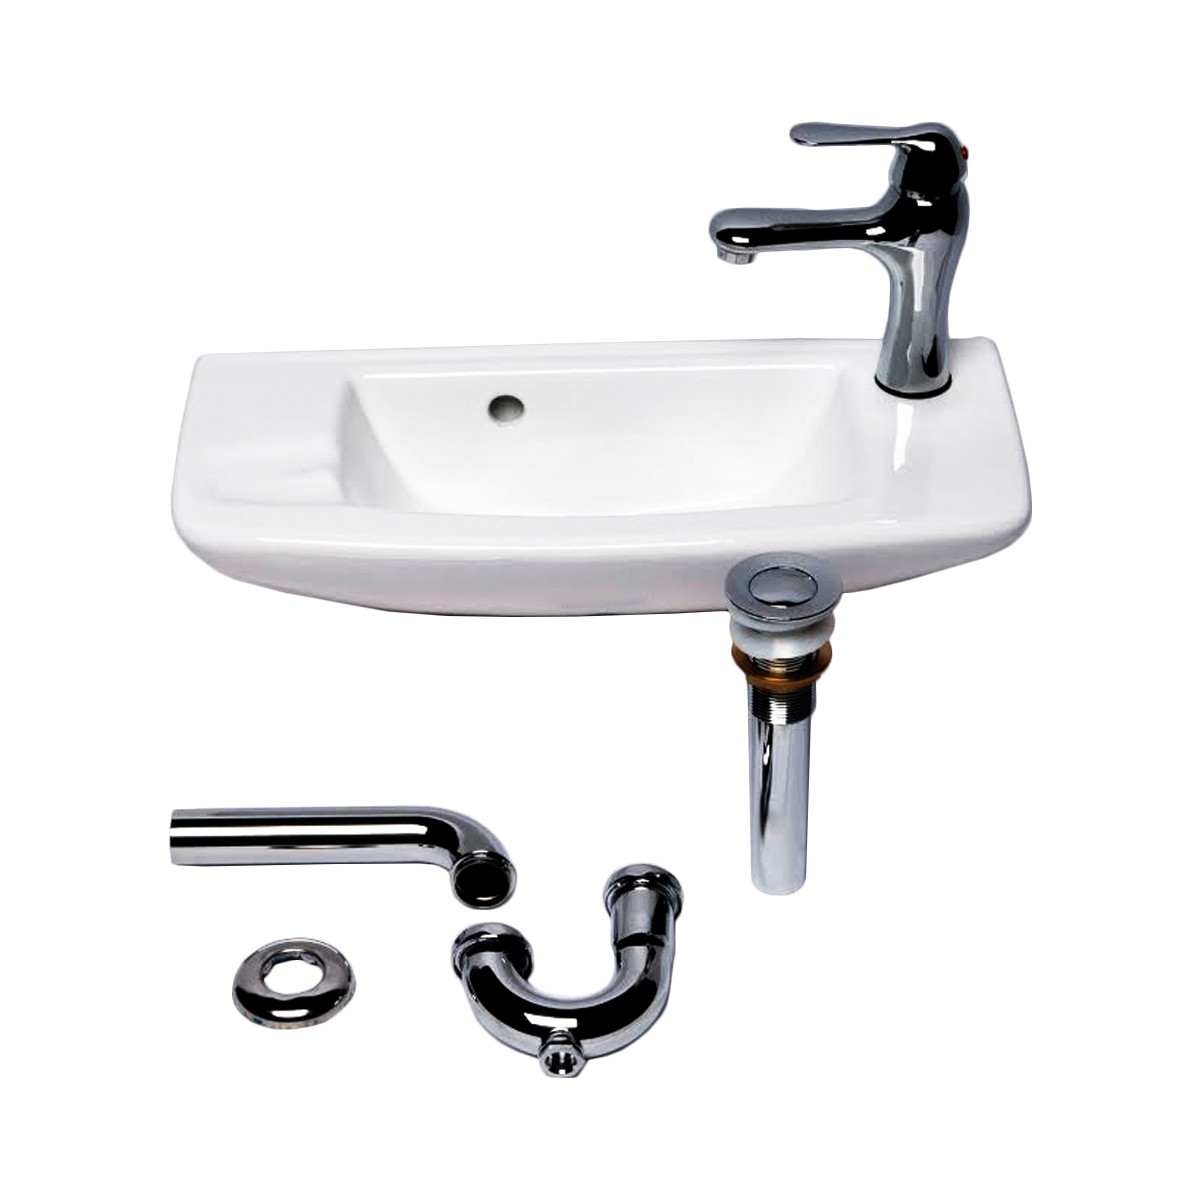 Small Wall Mount White Vessel Sink with Chrome Drain Faucet Overflow Set of 2 Alfi  AB103 Combo Alternative Whitehaus WH1102R Combo  Alternative FineFixtures  WH2010W Combo Alternative